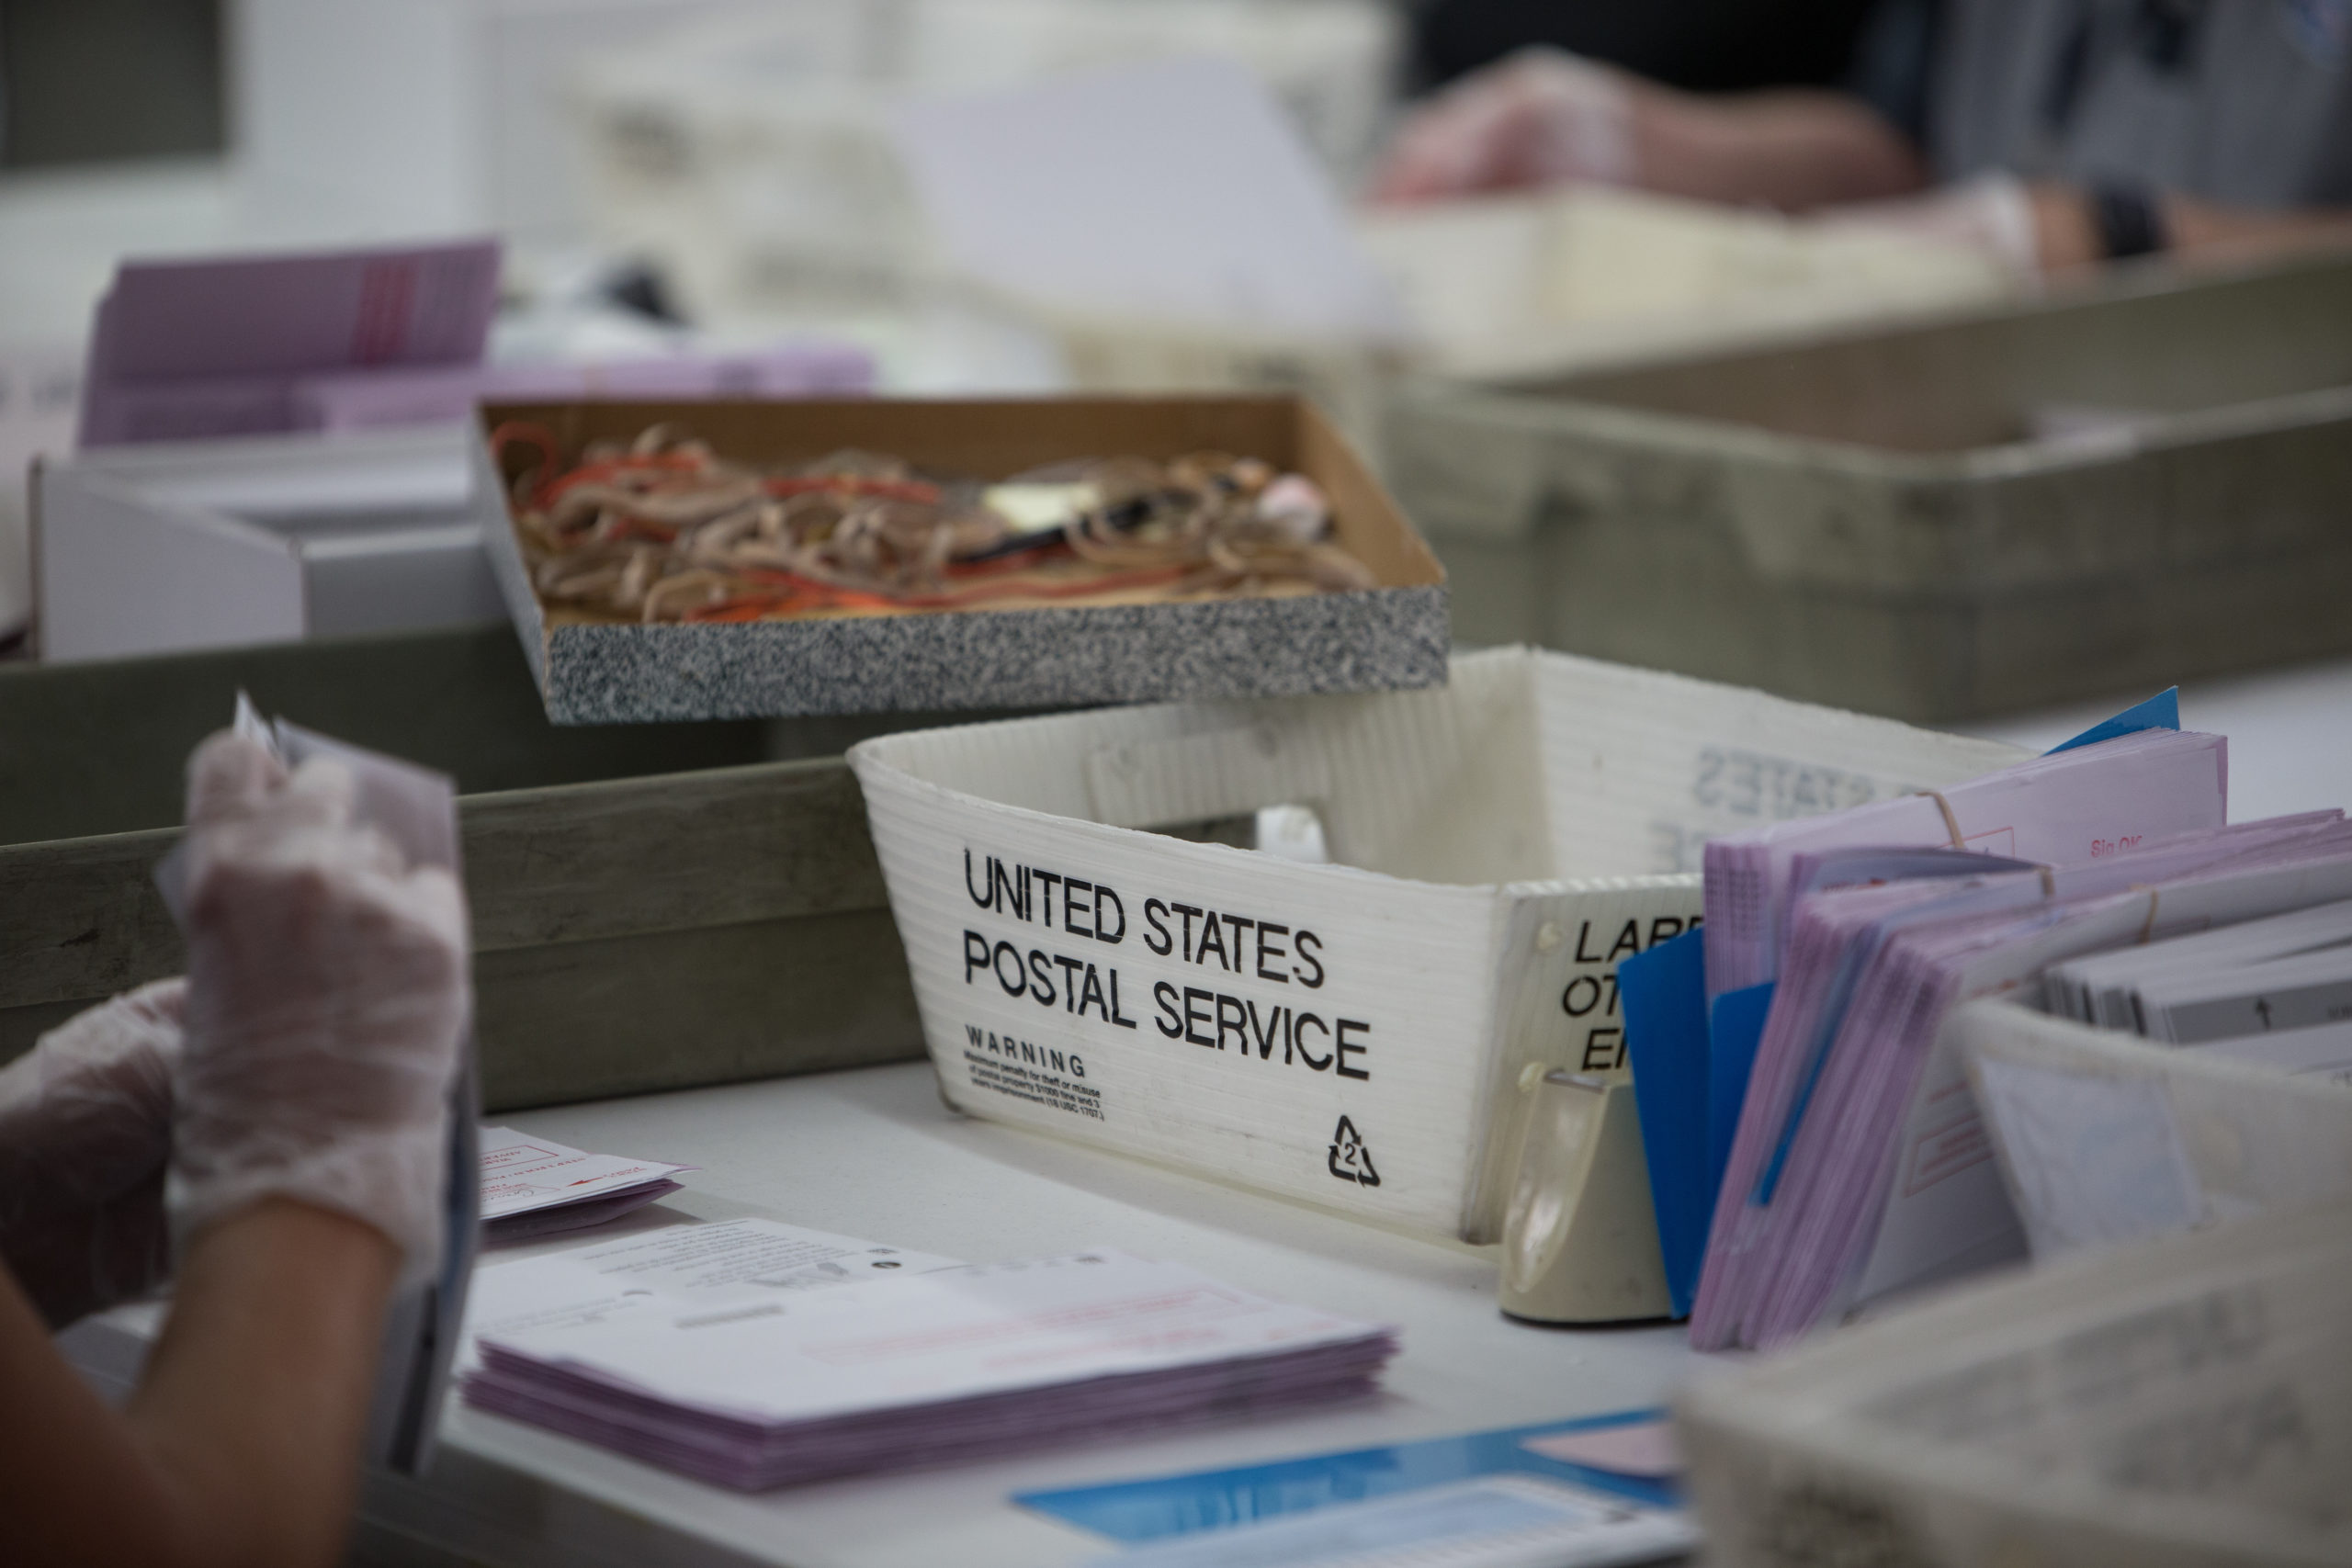 Important Facts About LDF's Case Against the United States Postal Service and the 2020 Elections